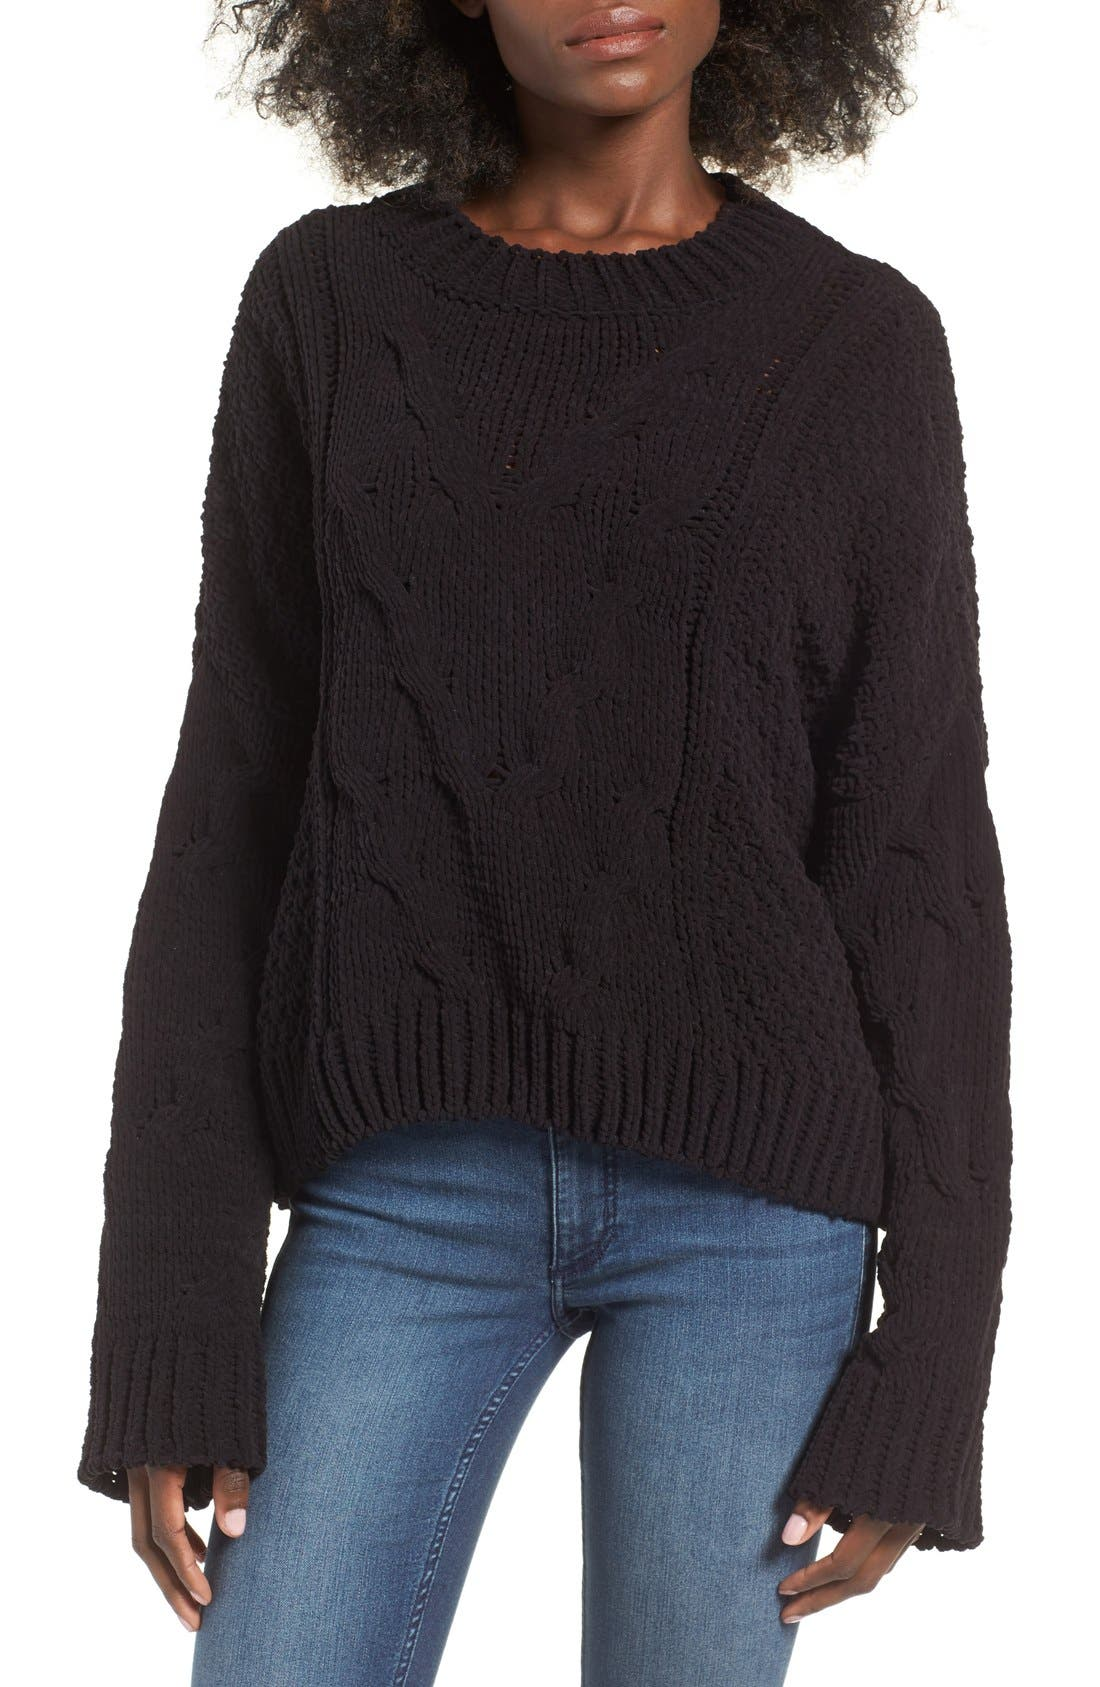 Main Image - J.O.A. Boxy Cable Knit Sweater